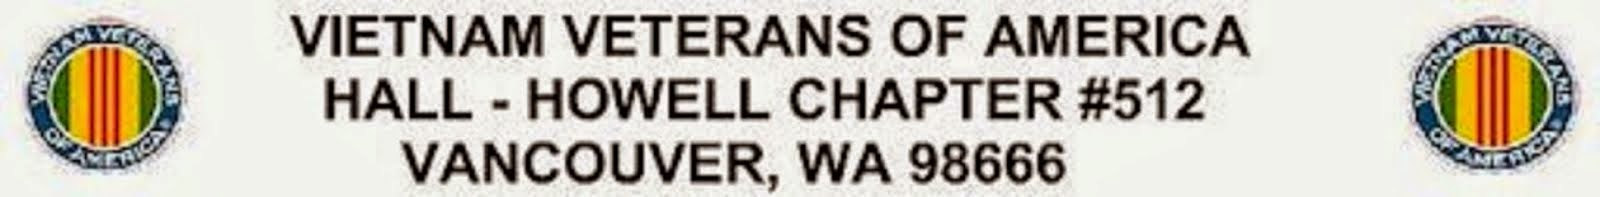 Vietnam Veterans of America Hall-Howell Chapter #512 Vancouver, WA 98666